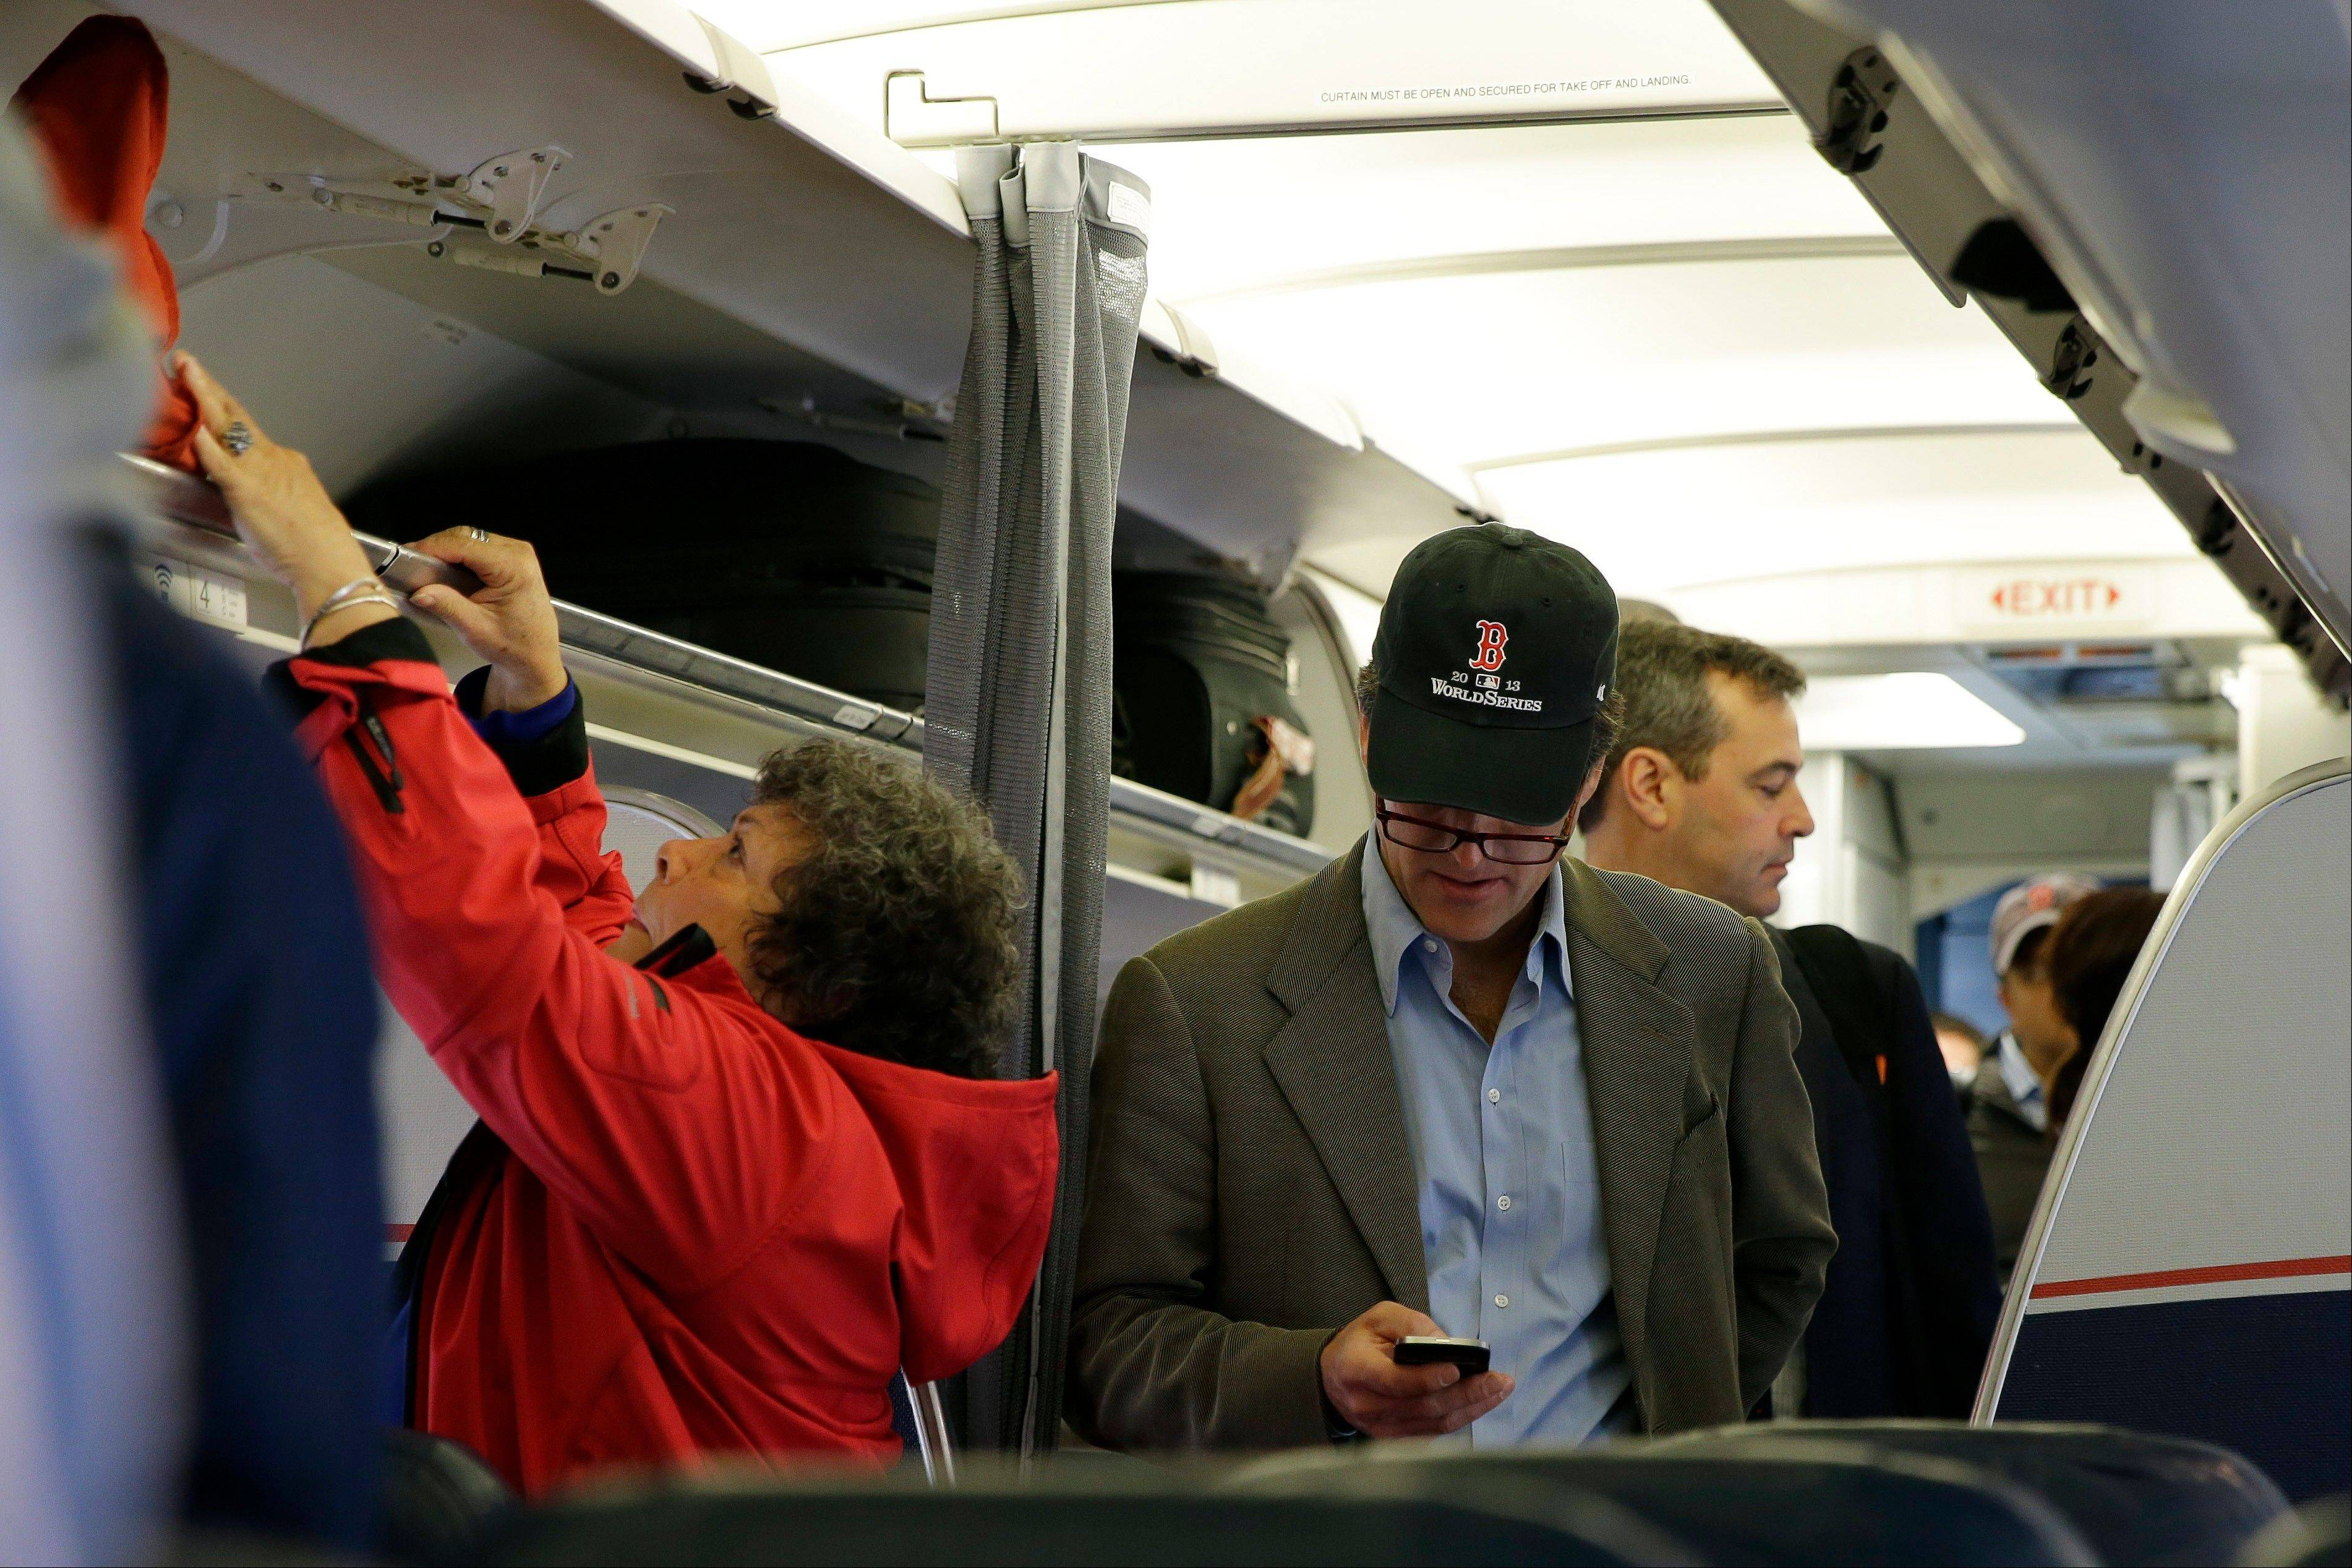 A passenger checks his cell phone while boarding a flight, in Boston.